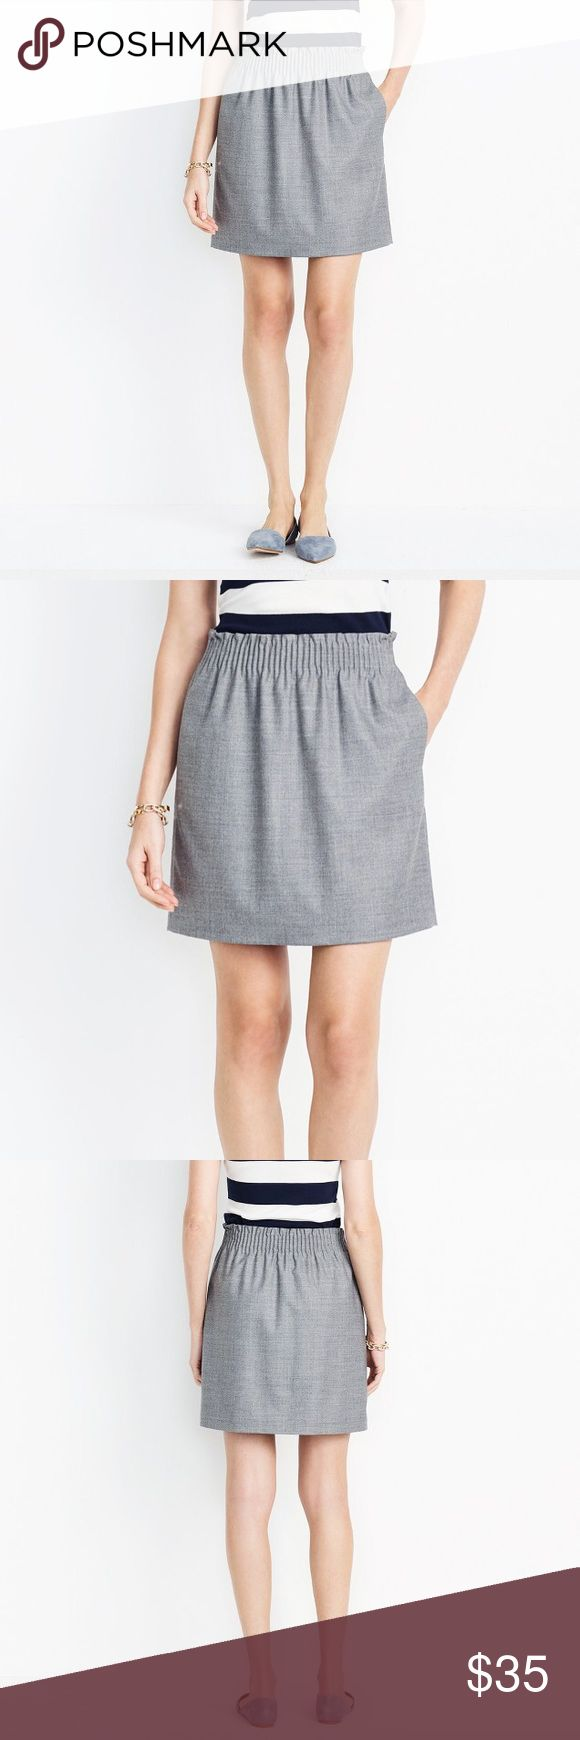 "J. CREW ELASTIC WAIST WOOL SIDEWALK SKIRT SZ 4 J. CREW WOOL SIDEWALK SKIRT SZ 4 ORIGINAL PRICE WAS $74.50   Brand: J. Crew Condition: BRAND NWOT Color: Gray  Size: 4 PRODUCT DETAILS - 38% Wool/ 30% Polyester/ 29% Viscose/ 3% Spandex with a hint of stretch. - Sits at waist. - 17 1/2"" long. - Elastic waistband. - 100% Acetate Lining. - Dry clean. - Import. - Item Style 95435.  RN 77388 CA 56445 J. Crew Skirts Mini"